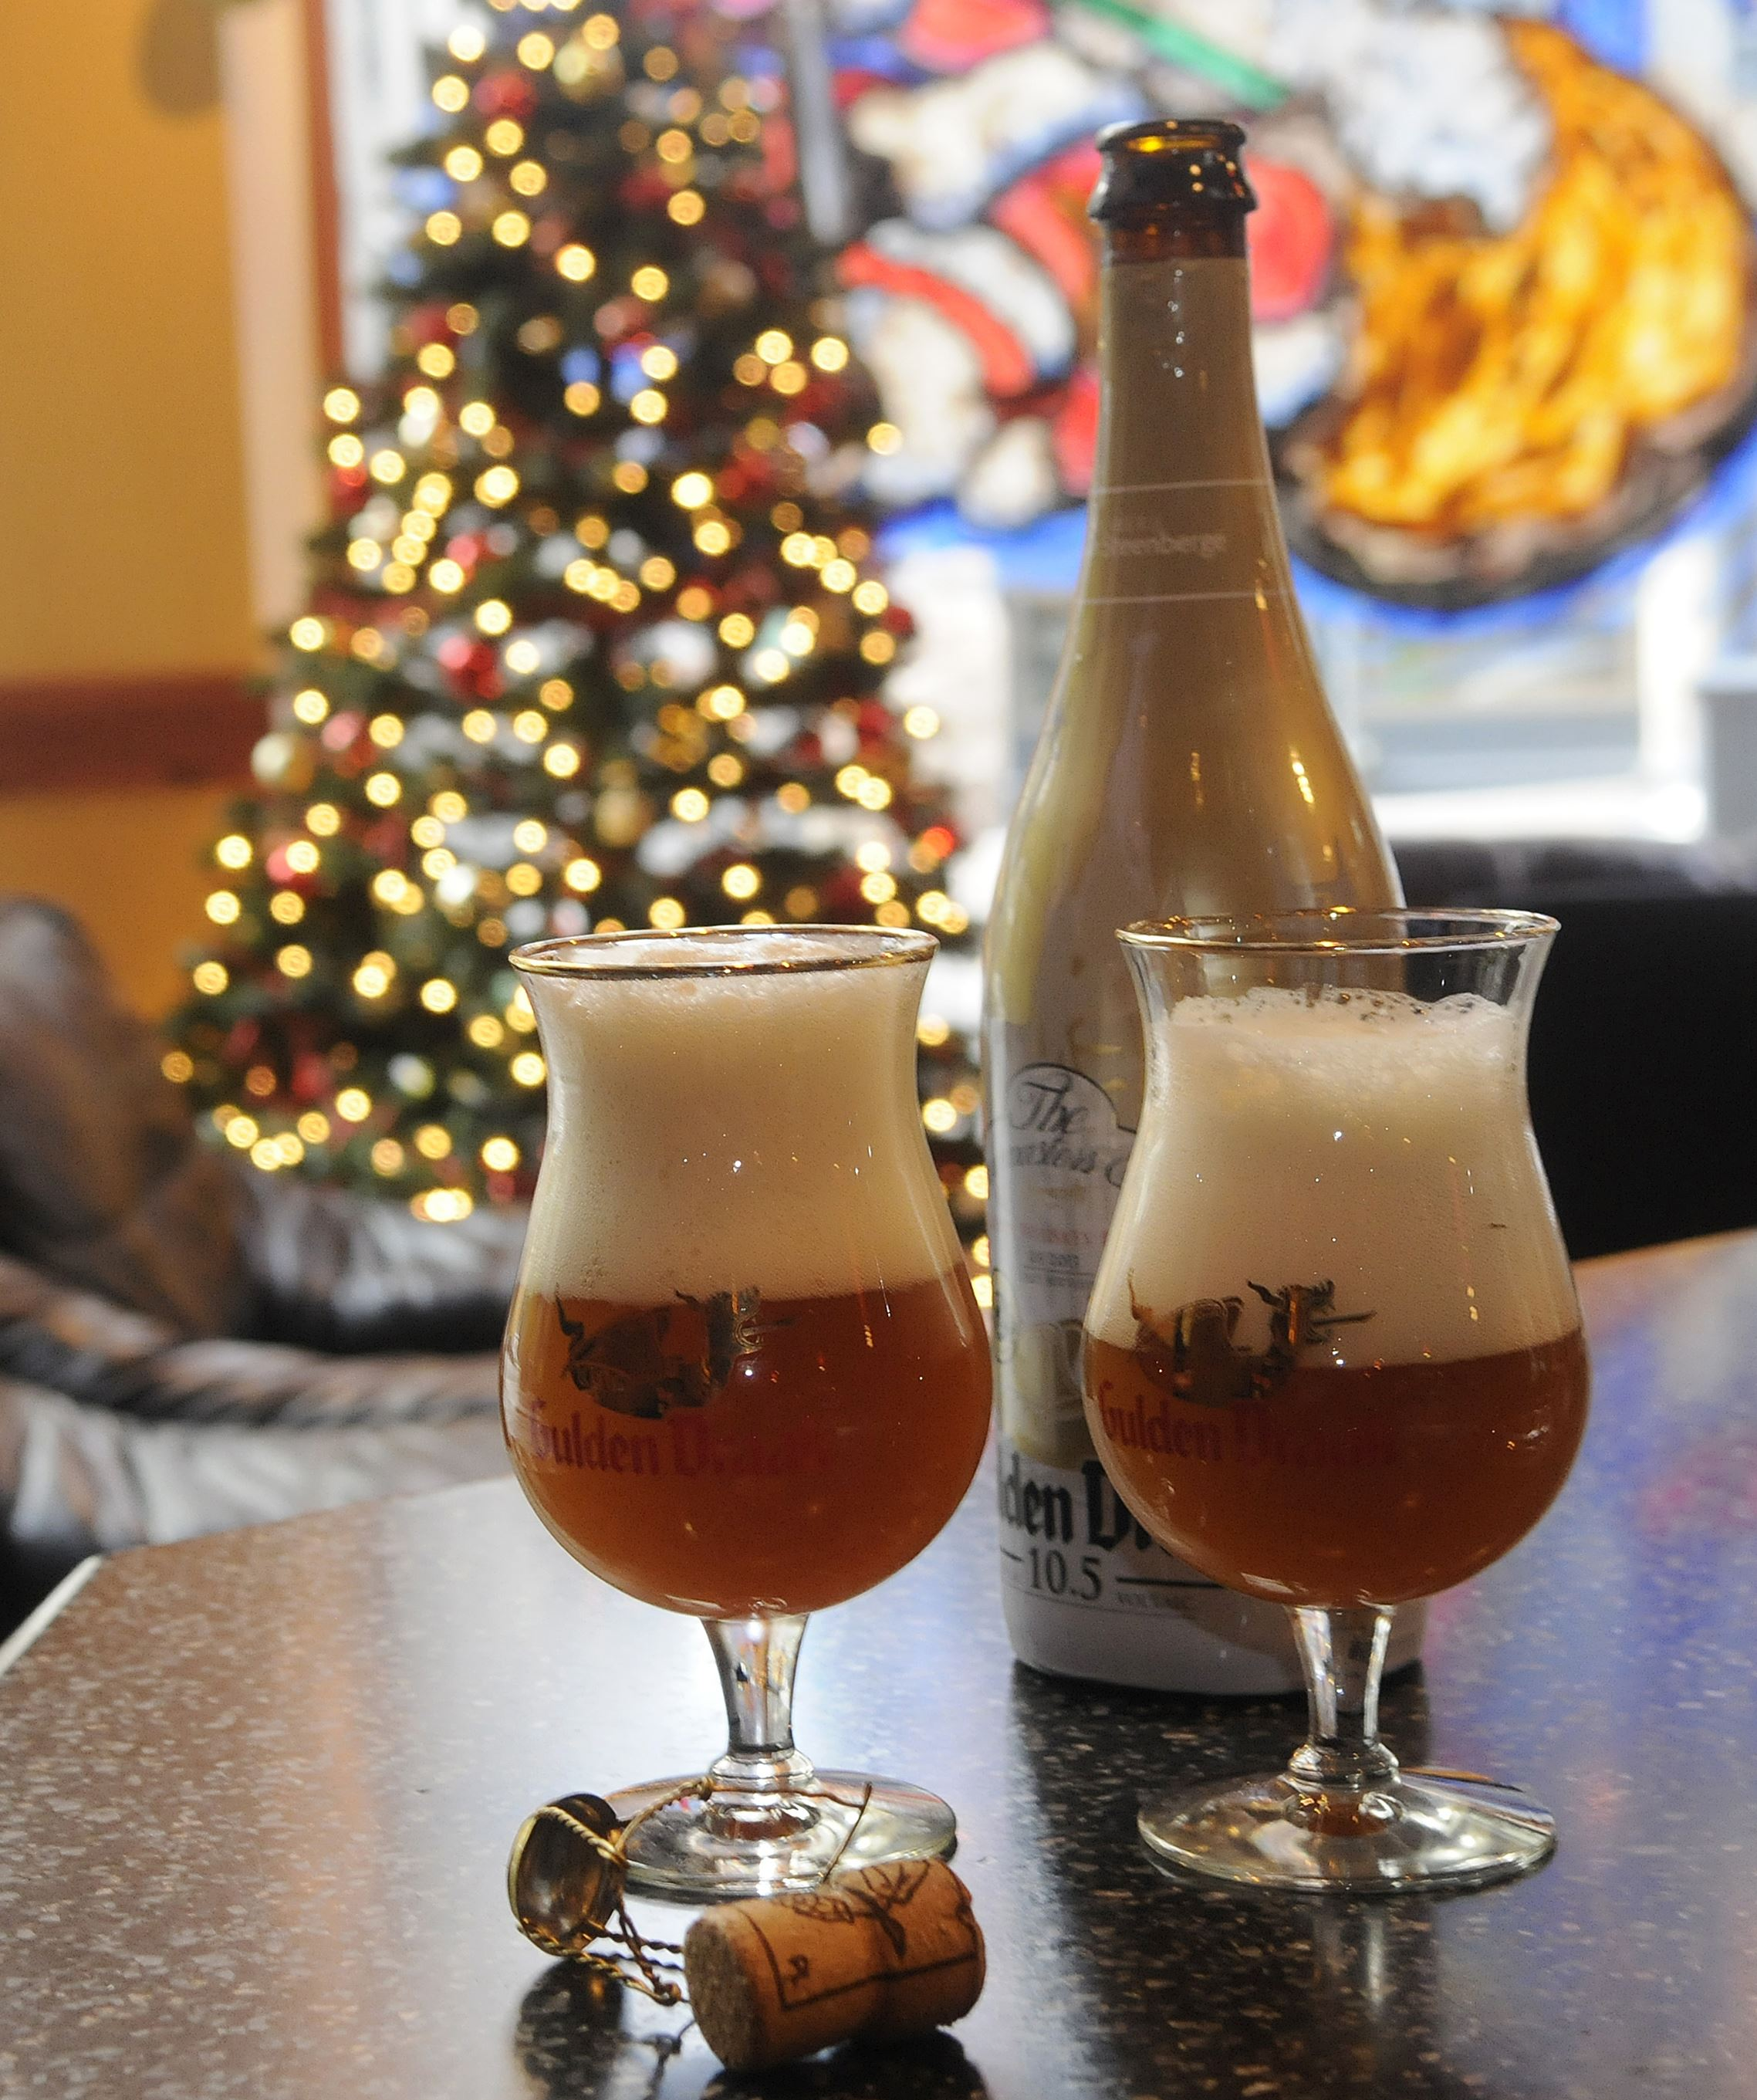 20131219lrbeerbailfood01 Gulden Draak shot at Sharp Edge.